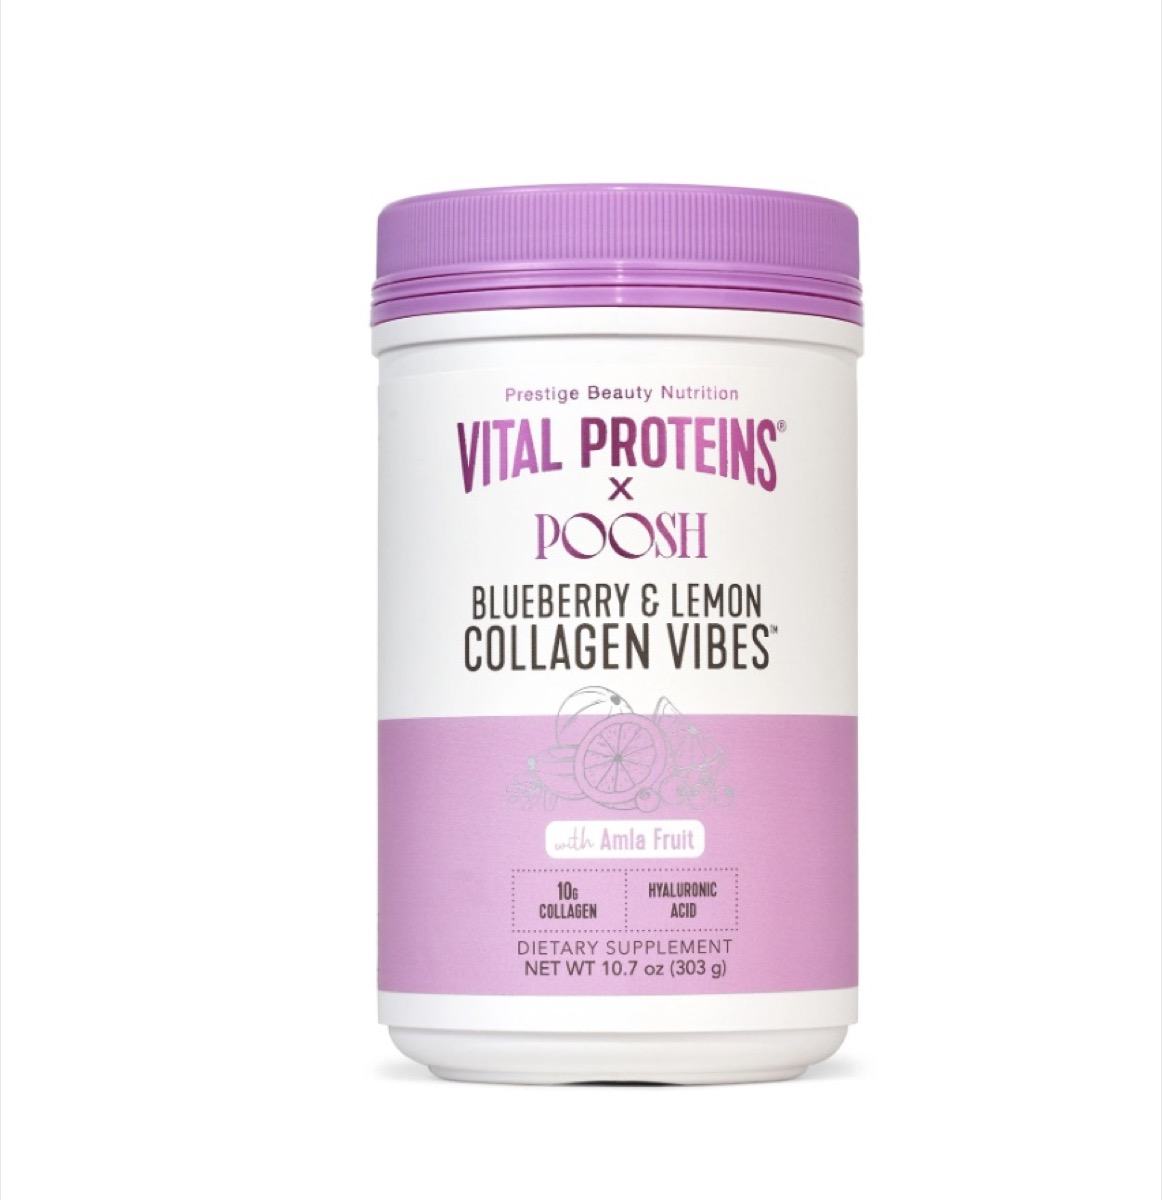 purple and white jar of collagen vibes powder